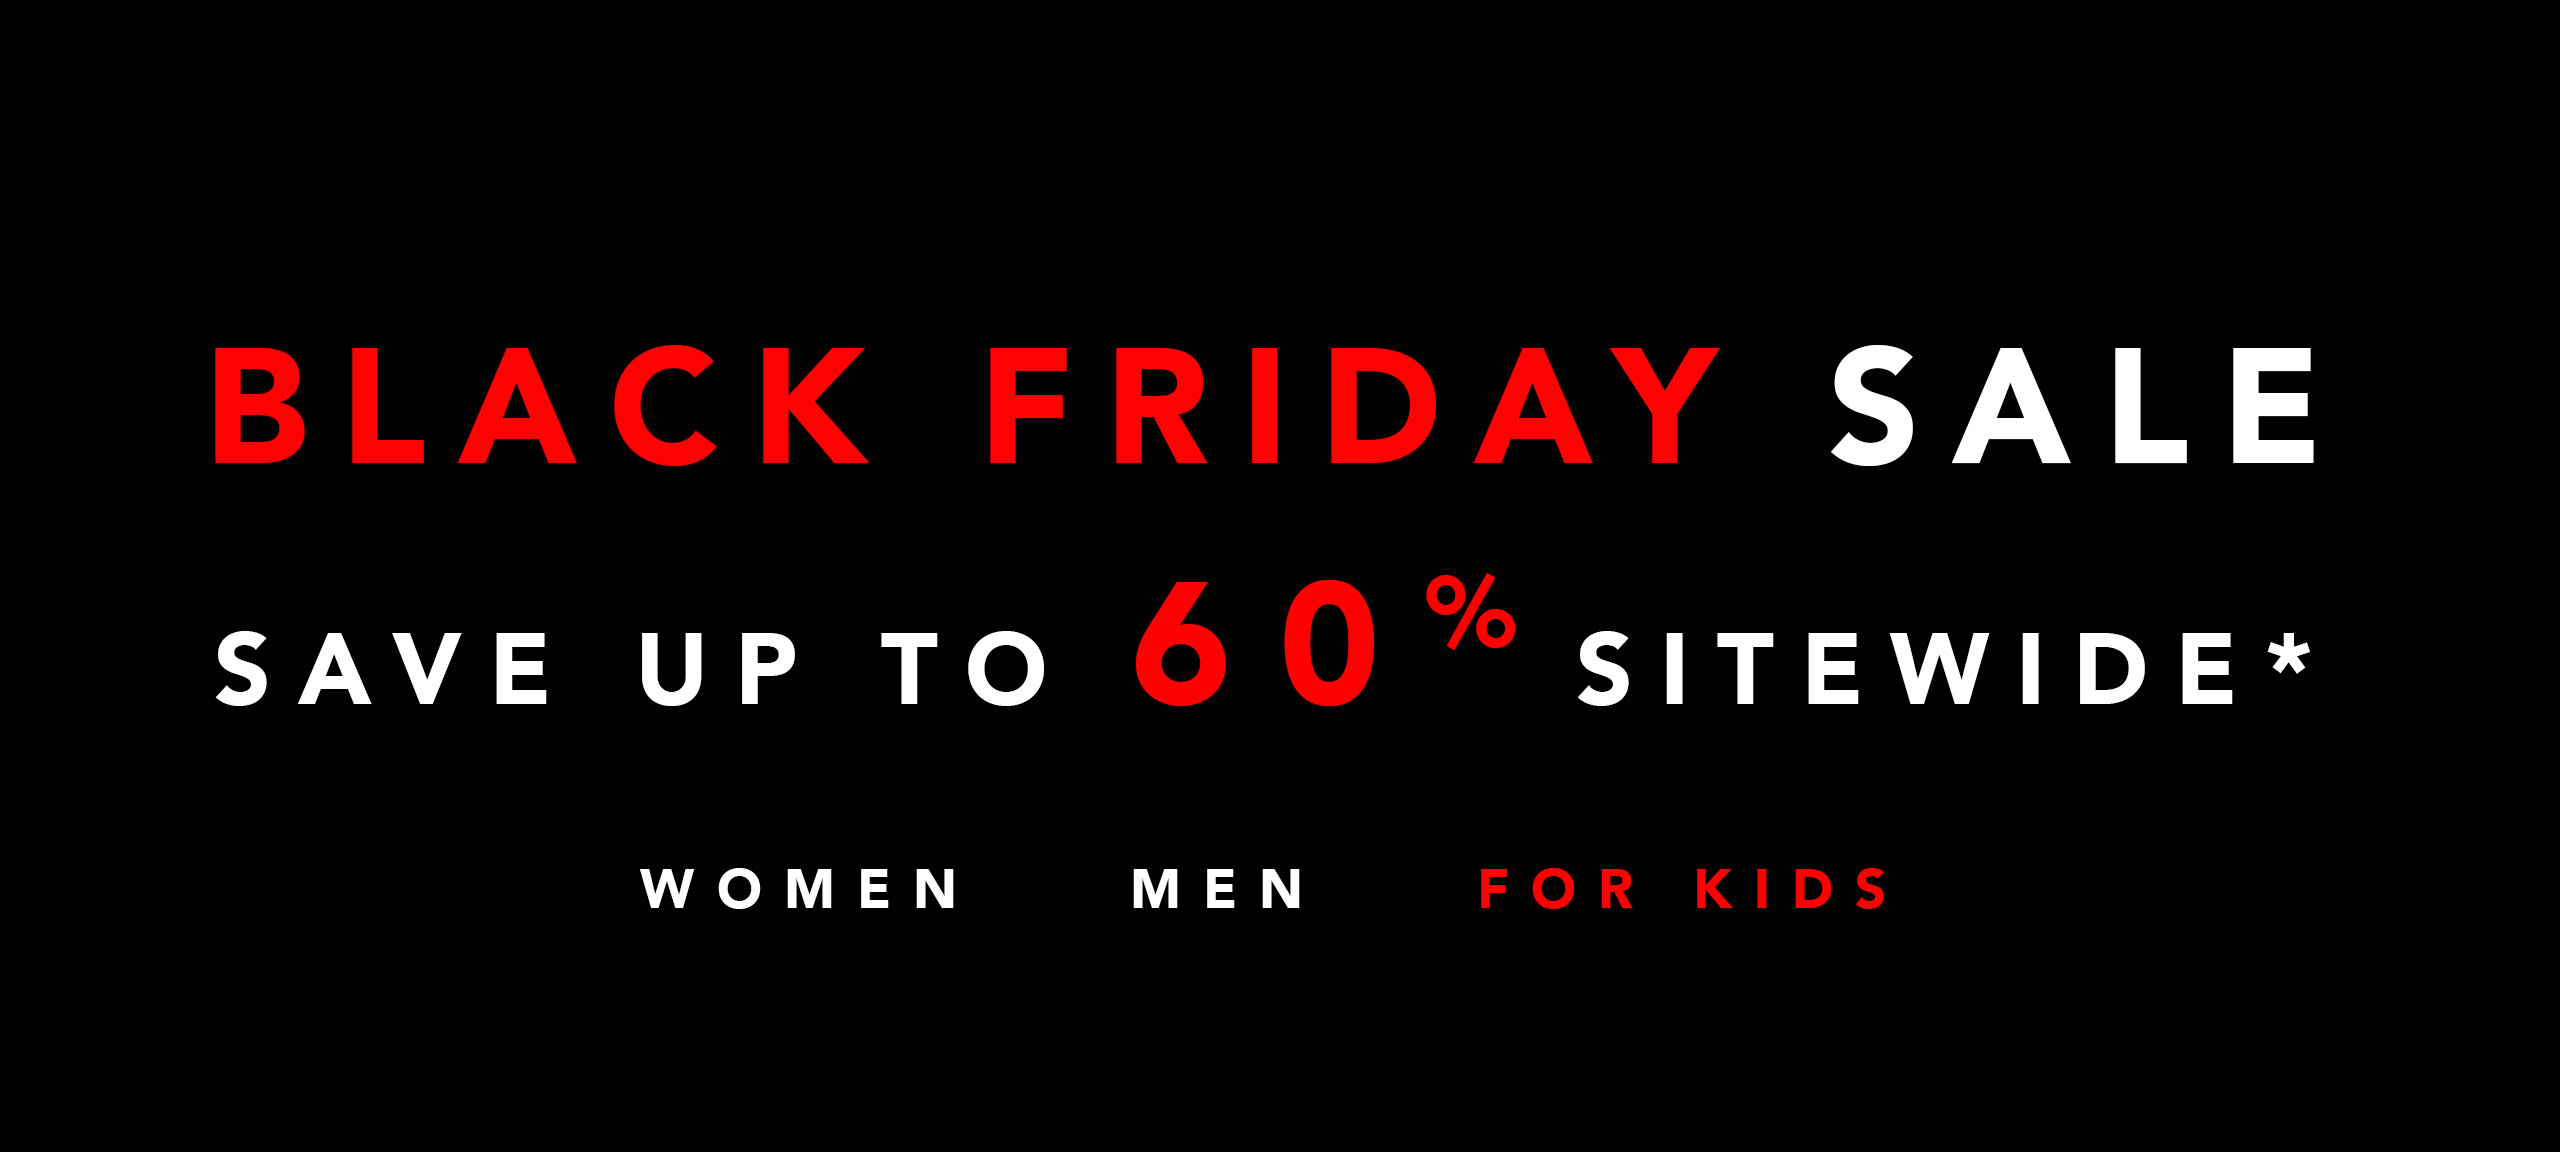 PATRICIA BLACK and RED lingerie set  Black Friday  cyber week sale